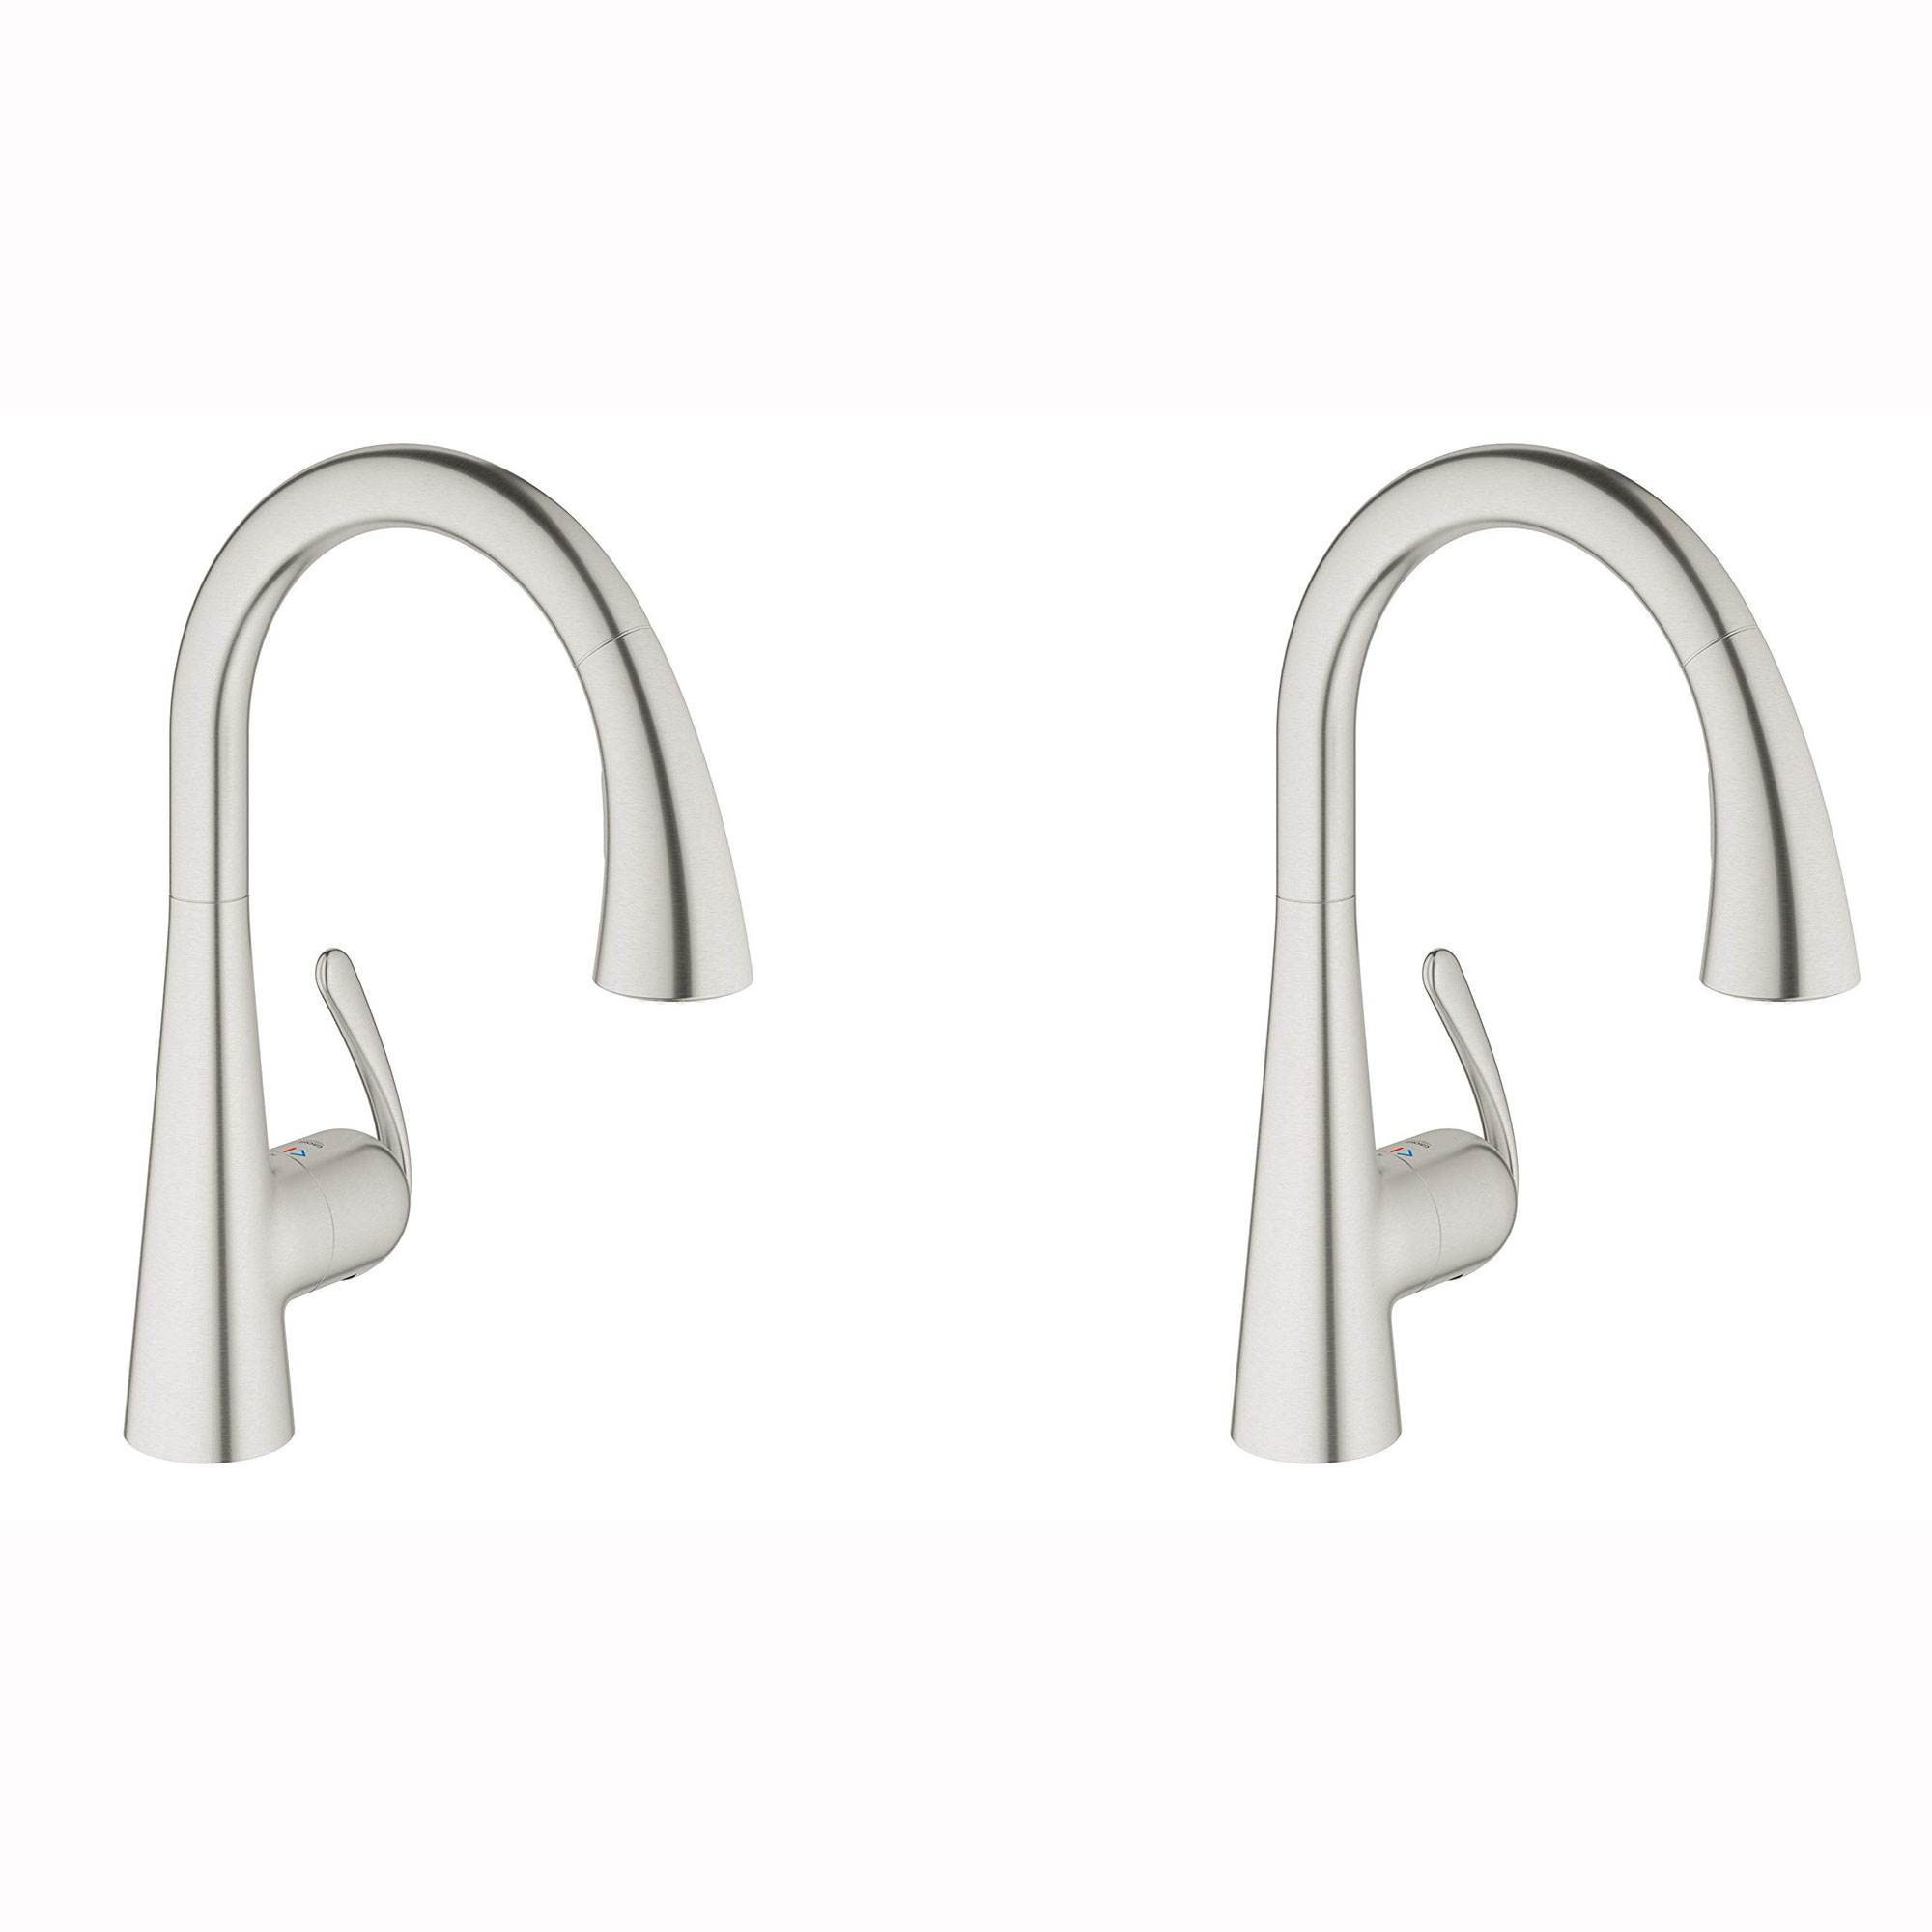 Grohe Ladylux Single Handle Swivel Kitchen Faucet With Steel Finish 2 Pack Walmart Com Walmart Com